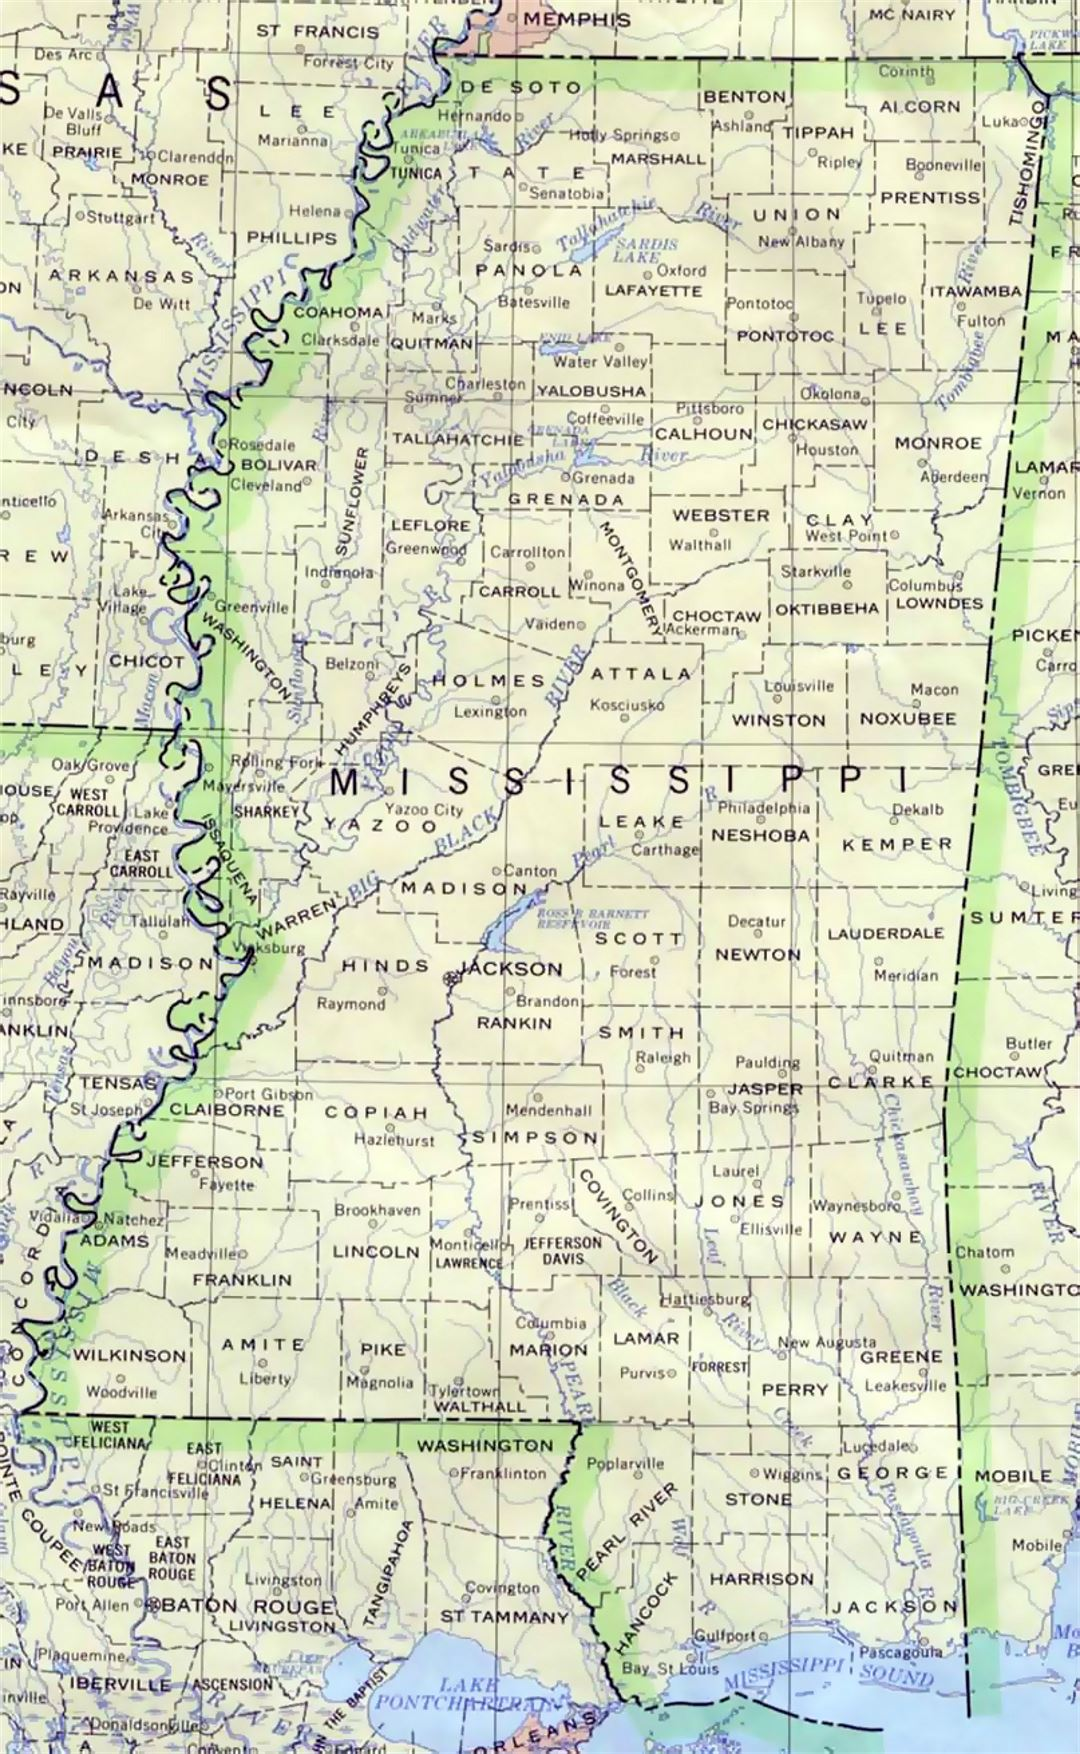 Administrative map of Mississippi state